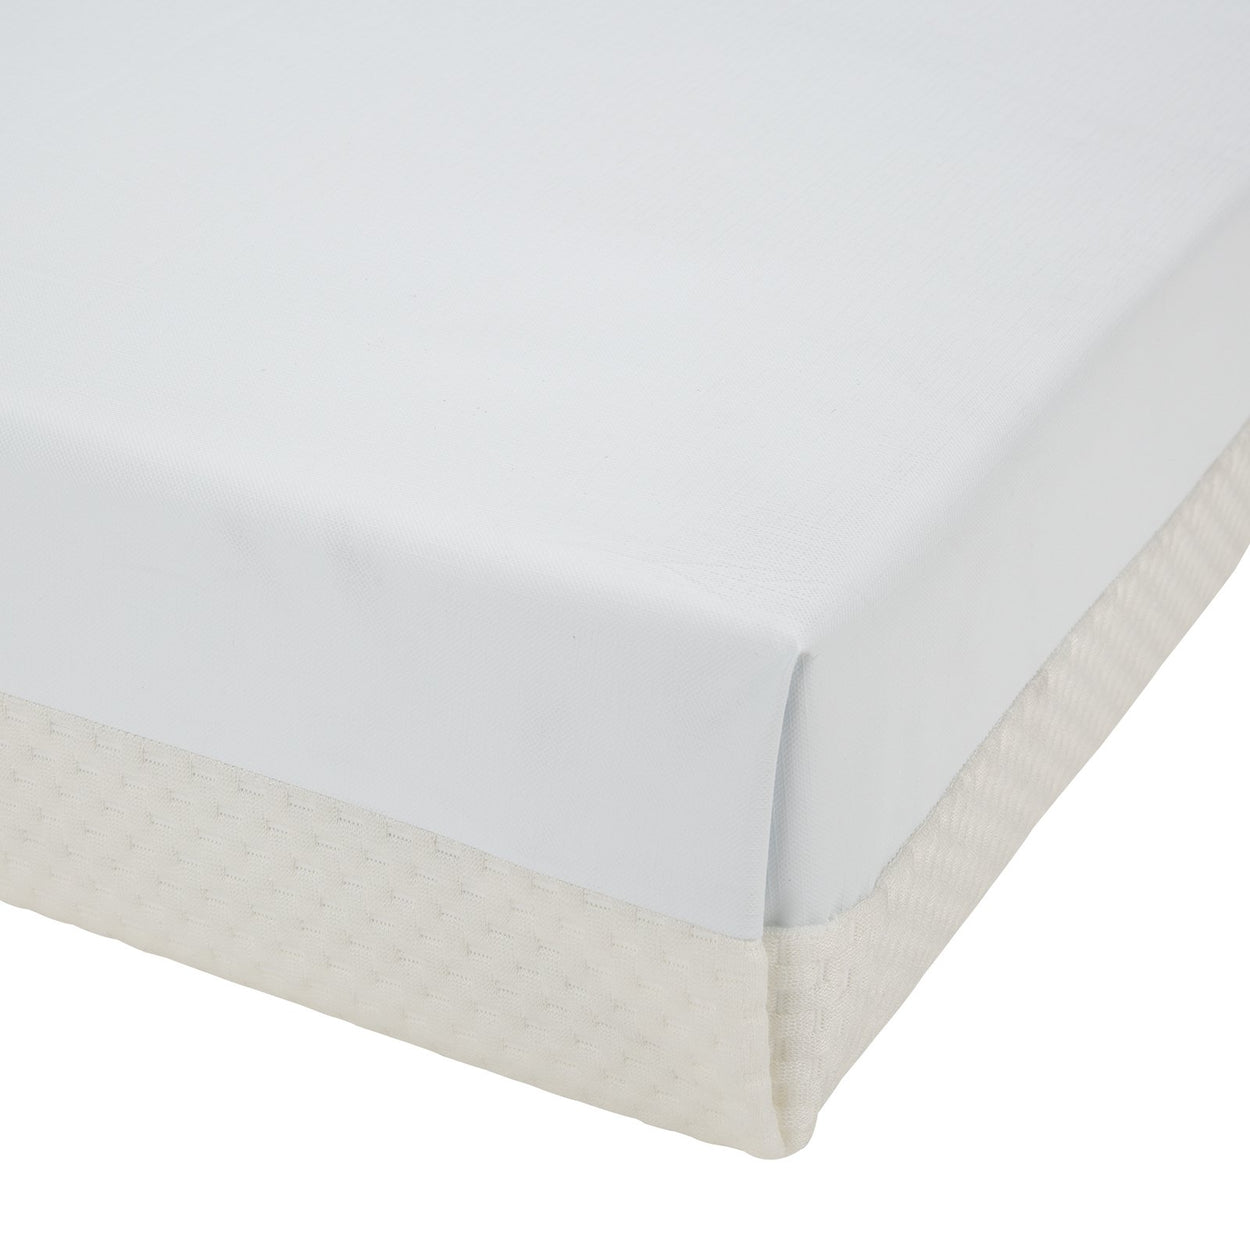 Harmony Hypo-Allergenic Bamboo Sprung Cot Mattress 120 x 60cm CuddleCo